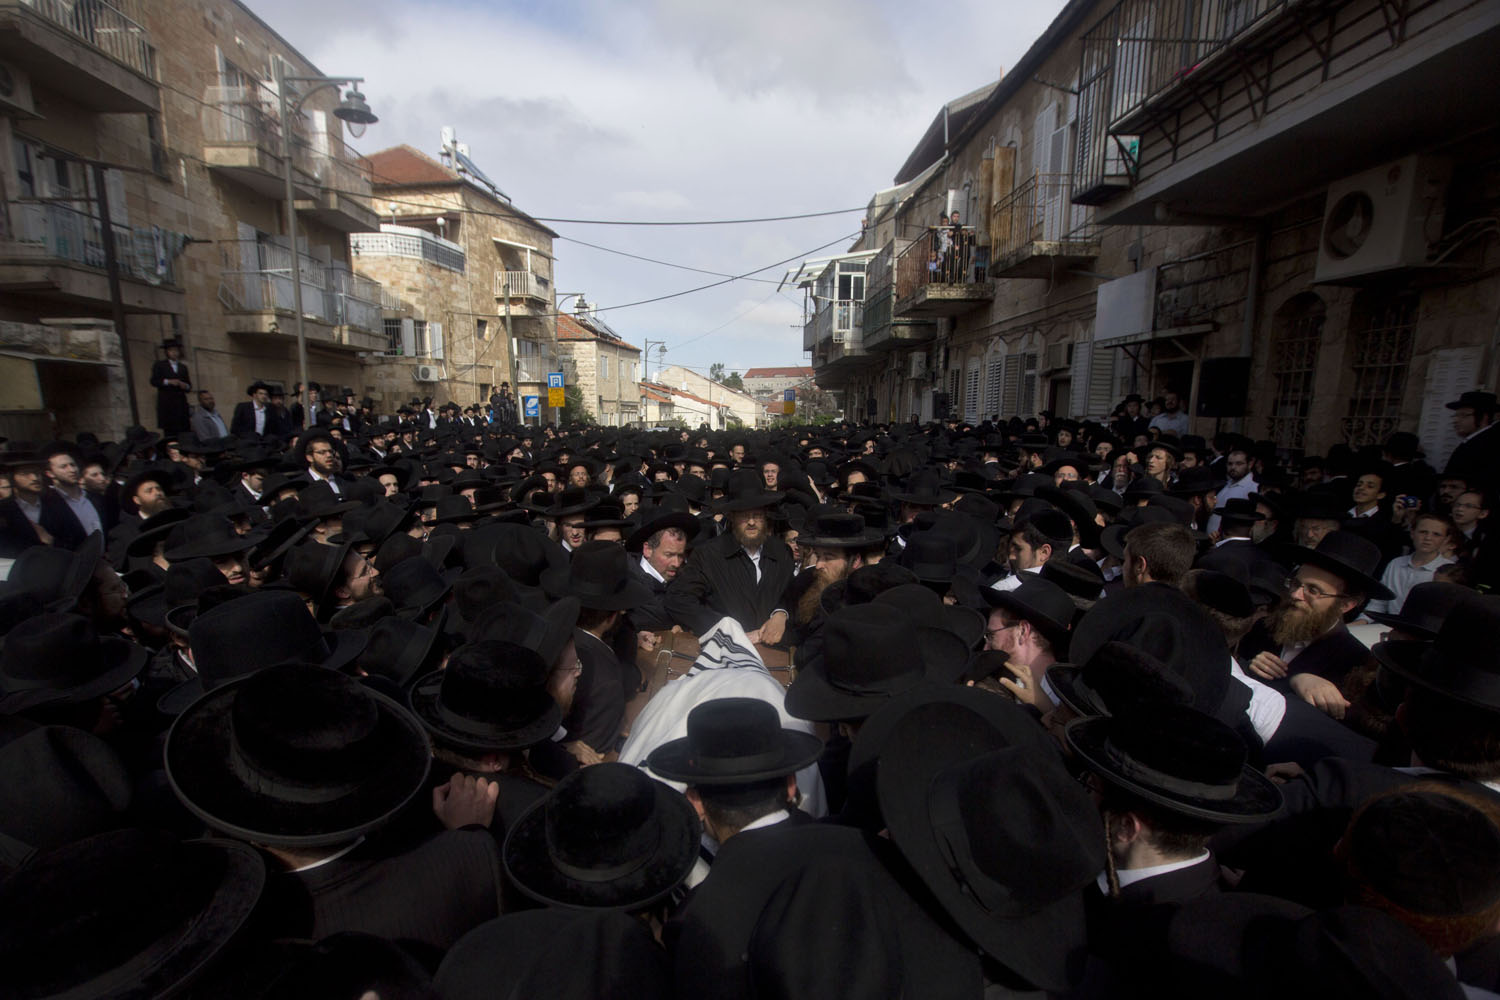 May 8, 2014. Ultra-Orthodox Jewish men carry the body of Rabbi Zundel Kroizer during his funeral in Jerusalem.